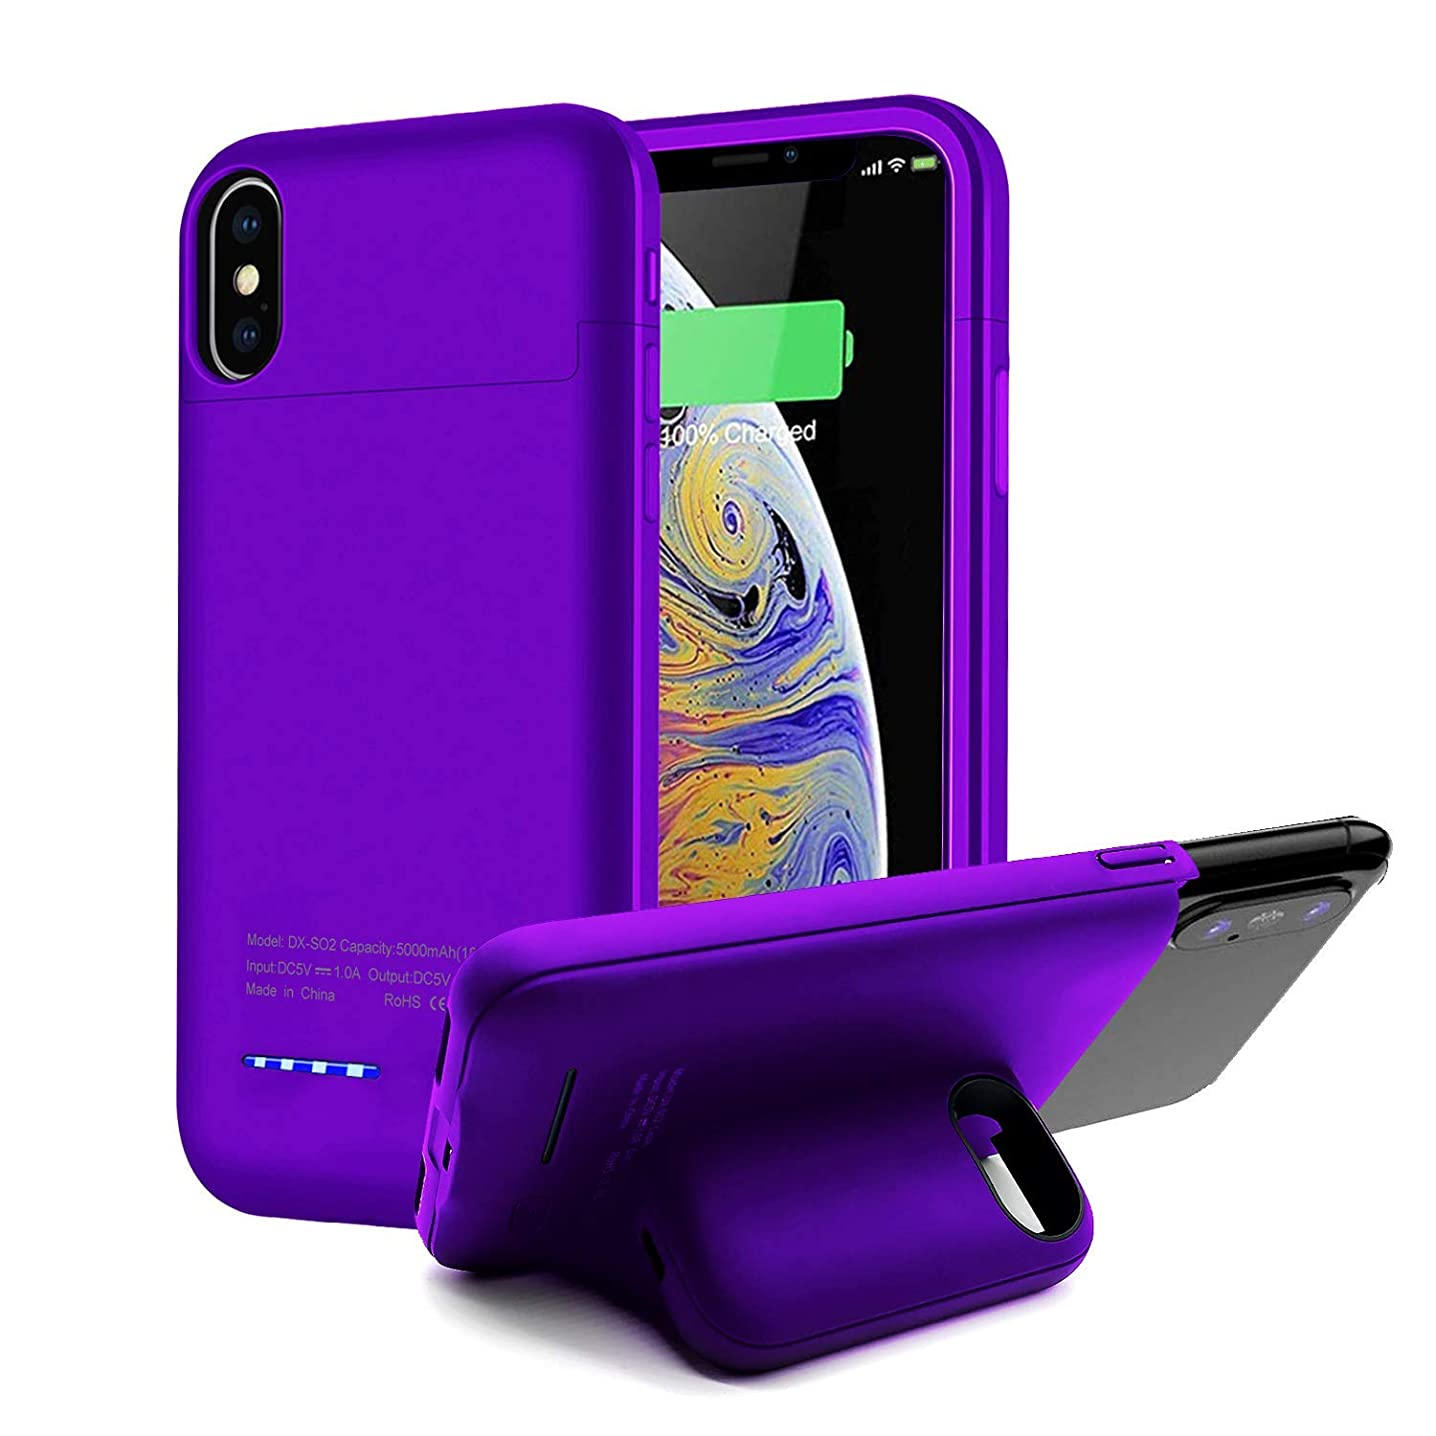 Battery Case for iPhone Xs Max, Upgraded KZNXCVI 5000mAh Battery Case with Magnetic Stand Design, Slim Extended Battery Charger Case for iPhone Xs Max 6.5